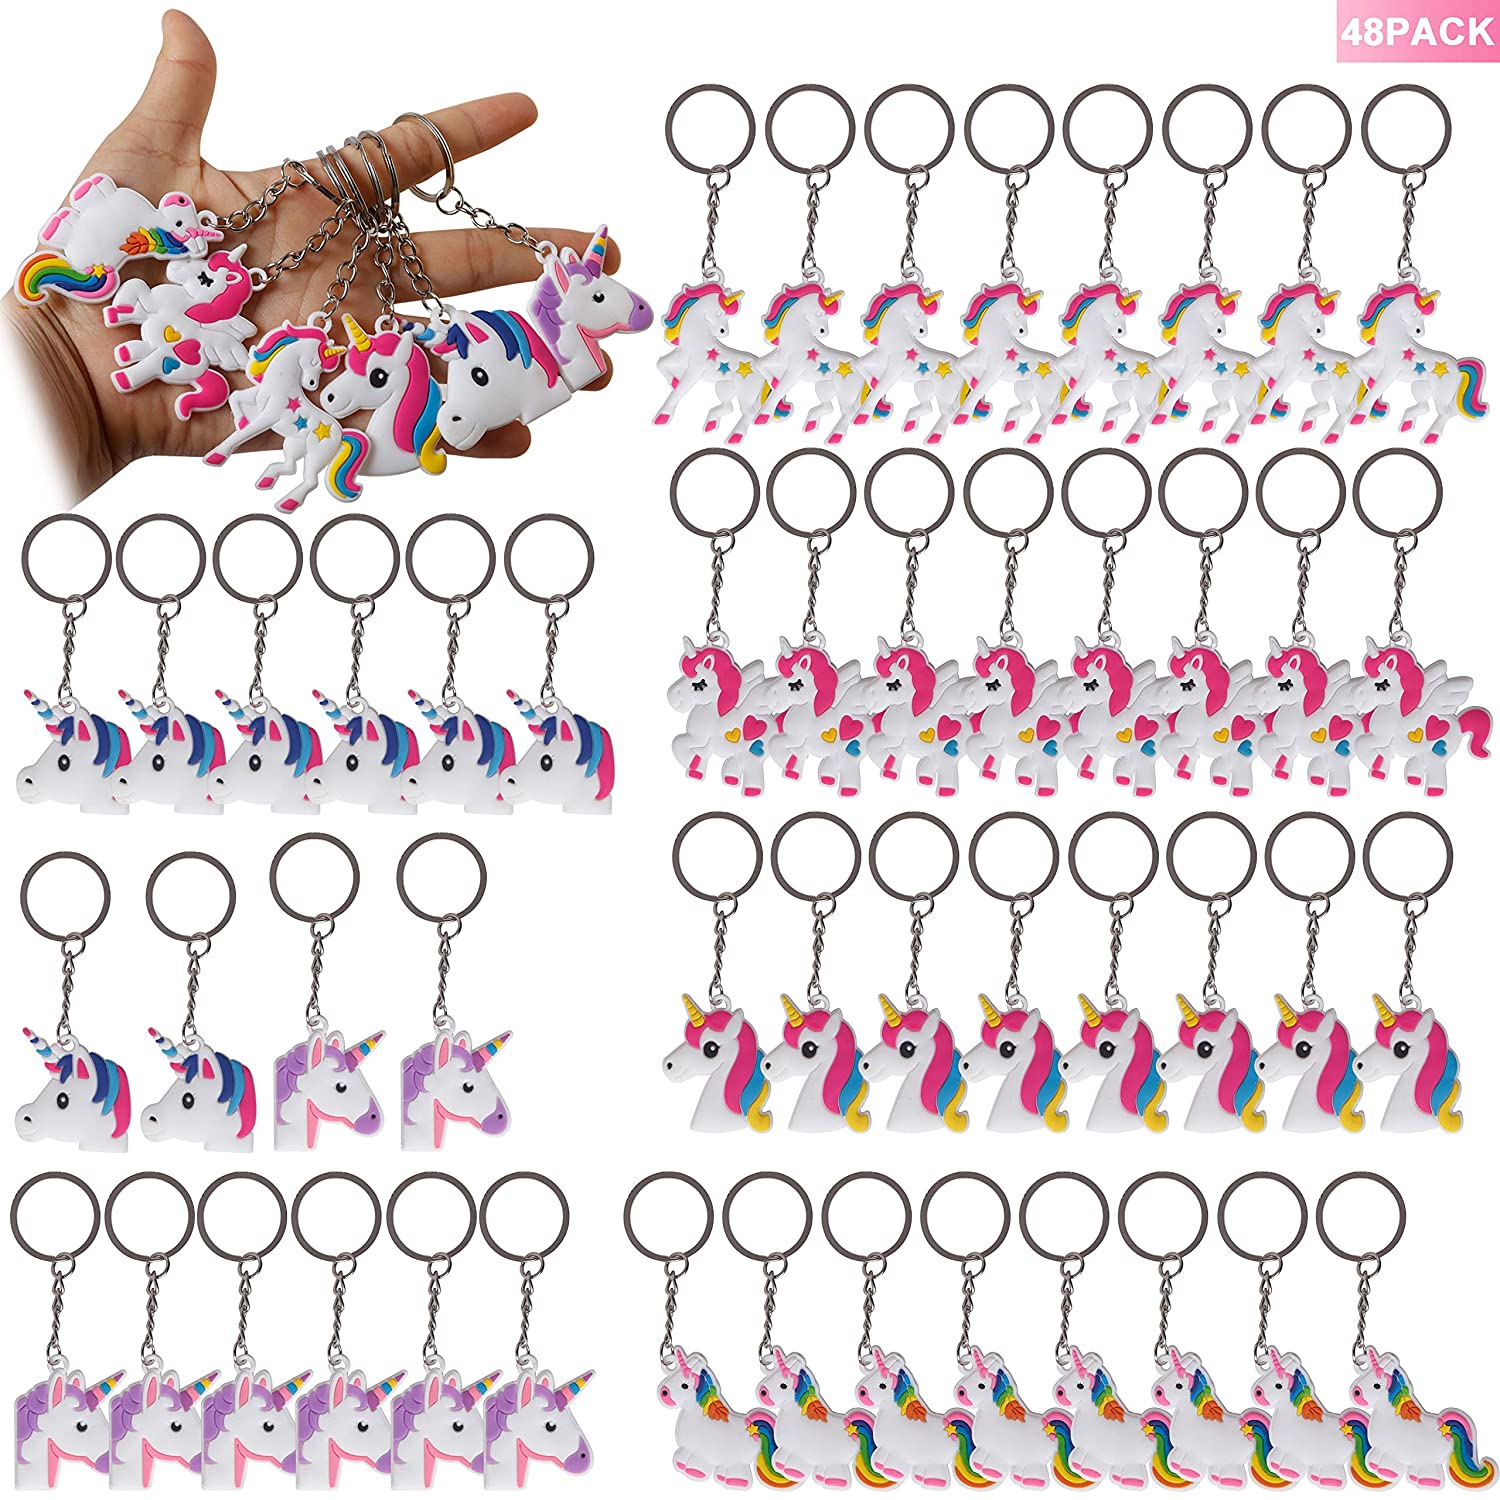 Novel Unicorn Theme Birthday Party Favors Kids Reward prizes for Halloween Party /& Christmas Sock Fillers /& Other Party Supplies Rainbow Unicorn Keychains 30 Pack